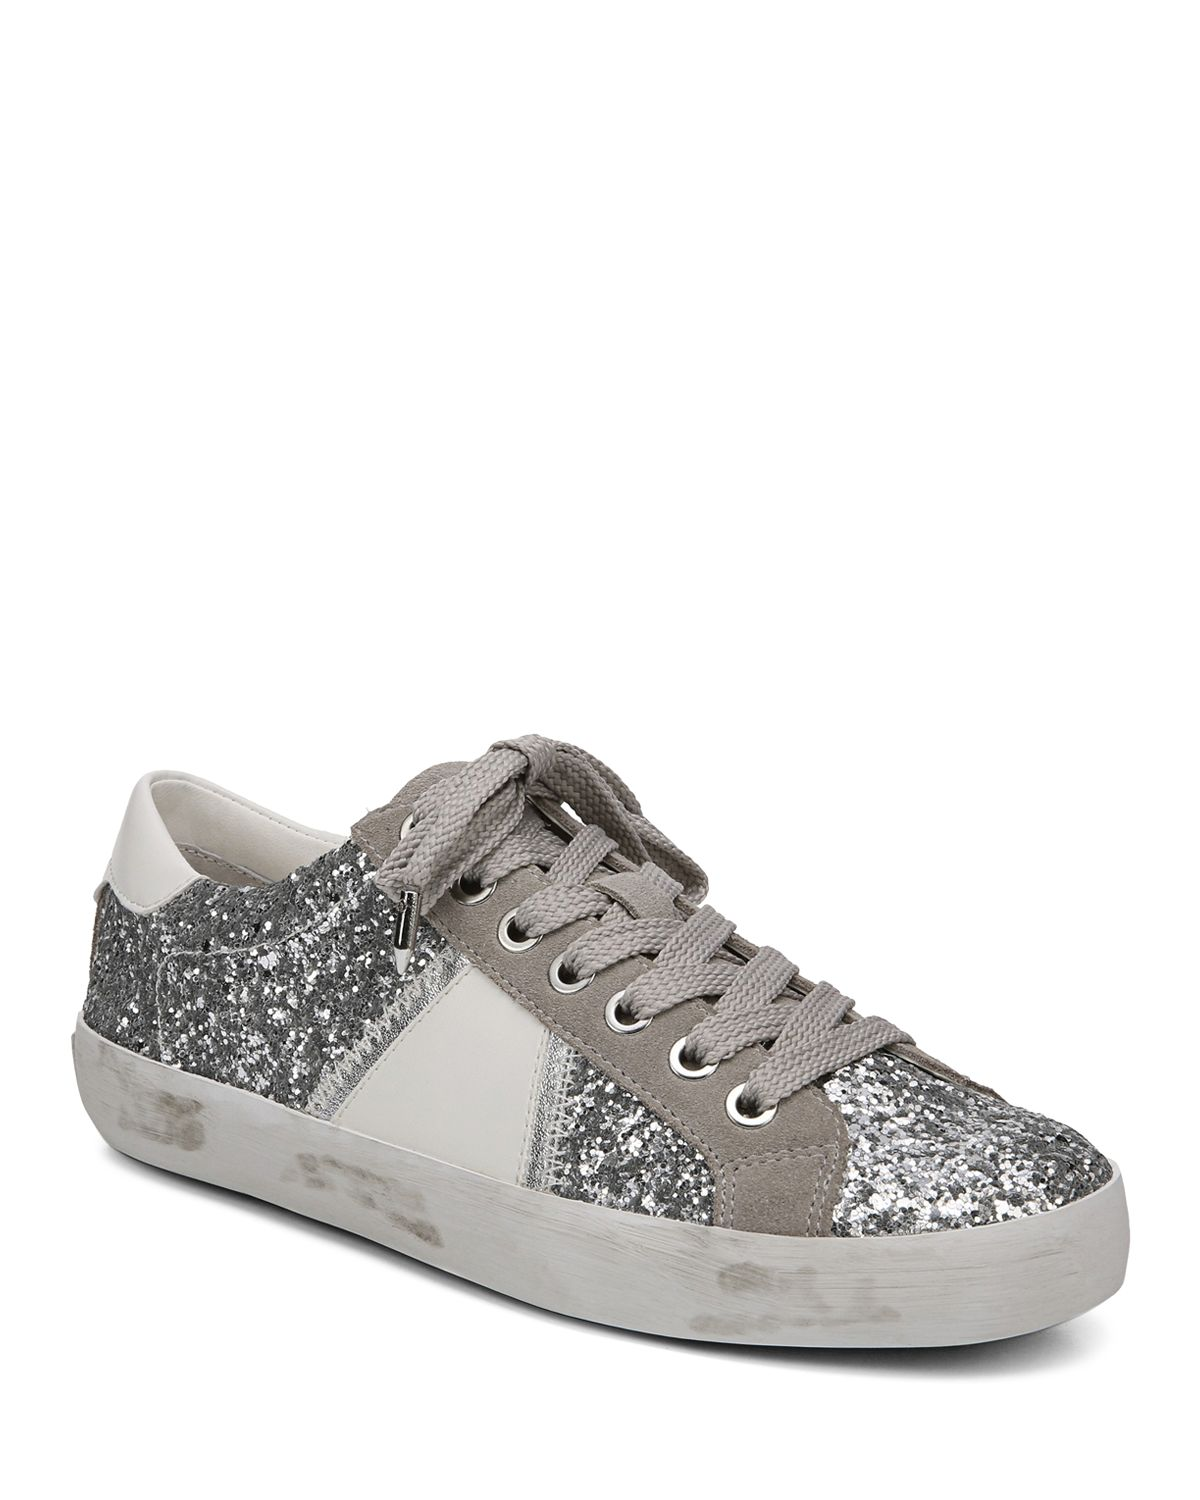 Sam Edelman Baylee Women's Suede Low Top Lace Up Sneakers